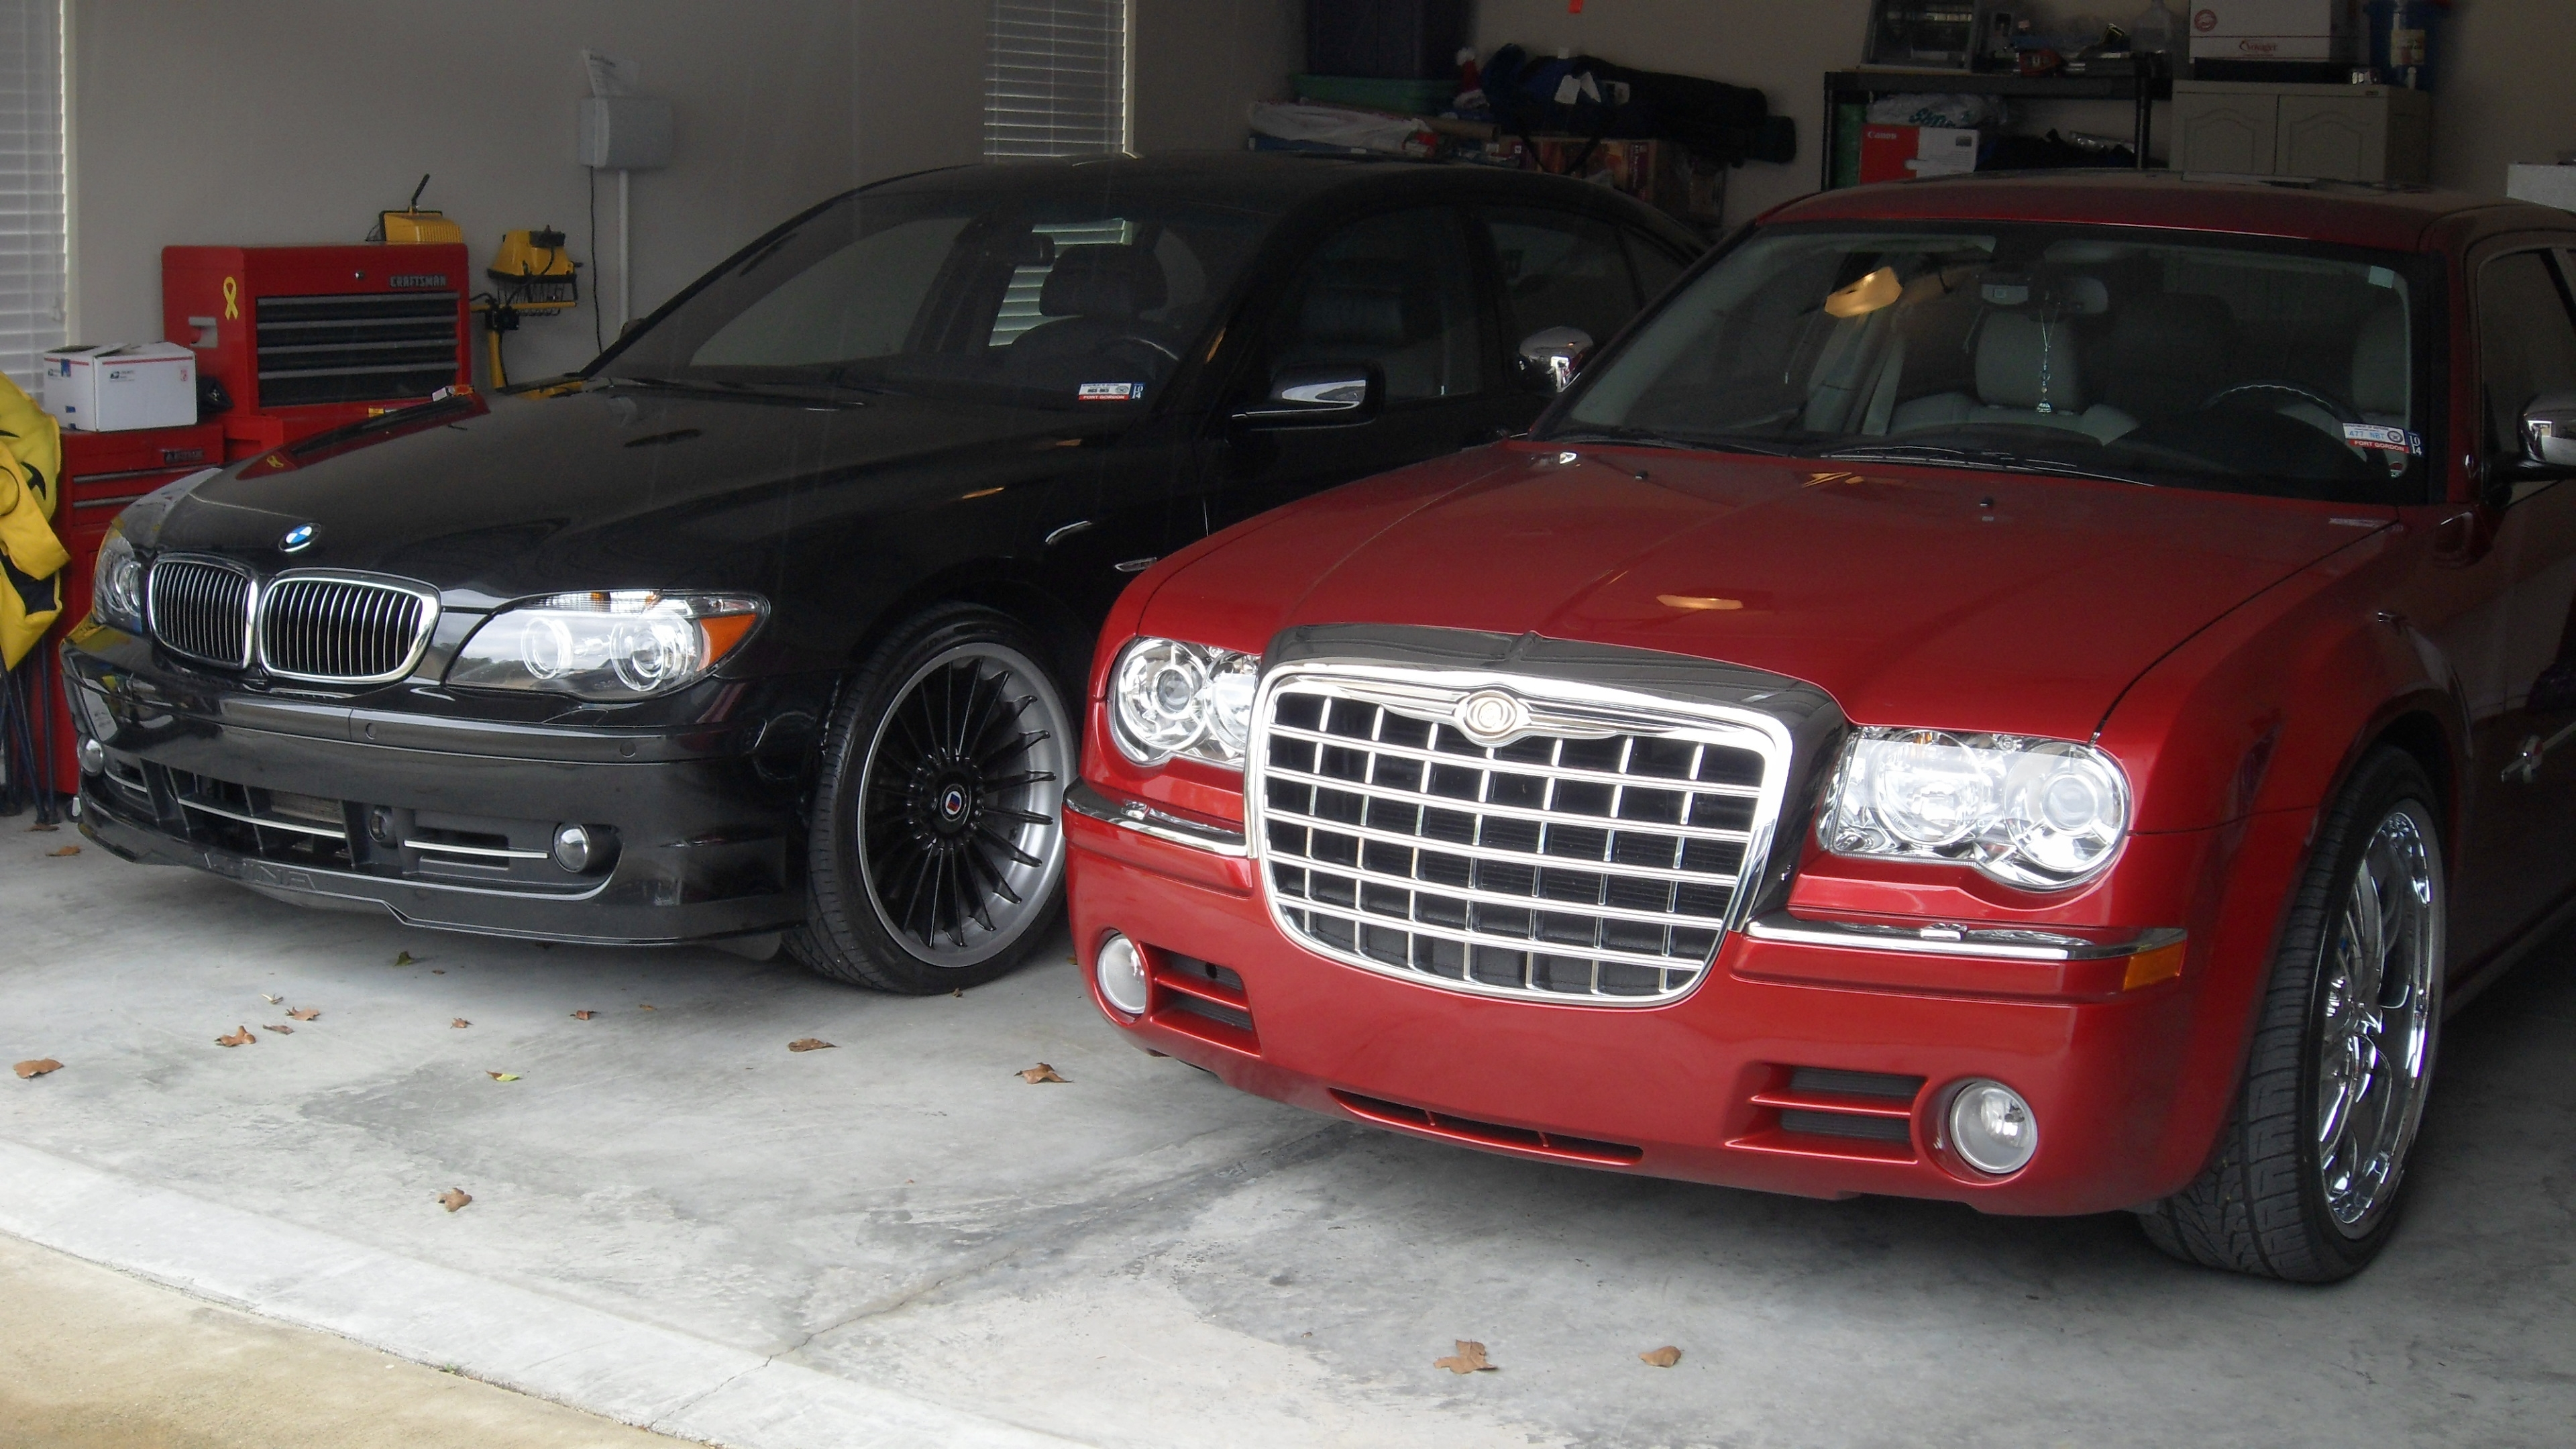 Another Jayw43 2006 Chrysler 300 post... - 3058938